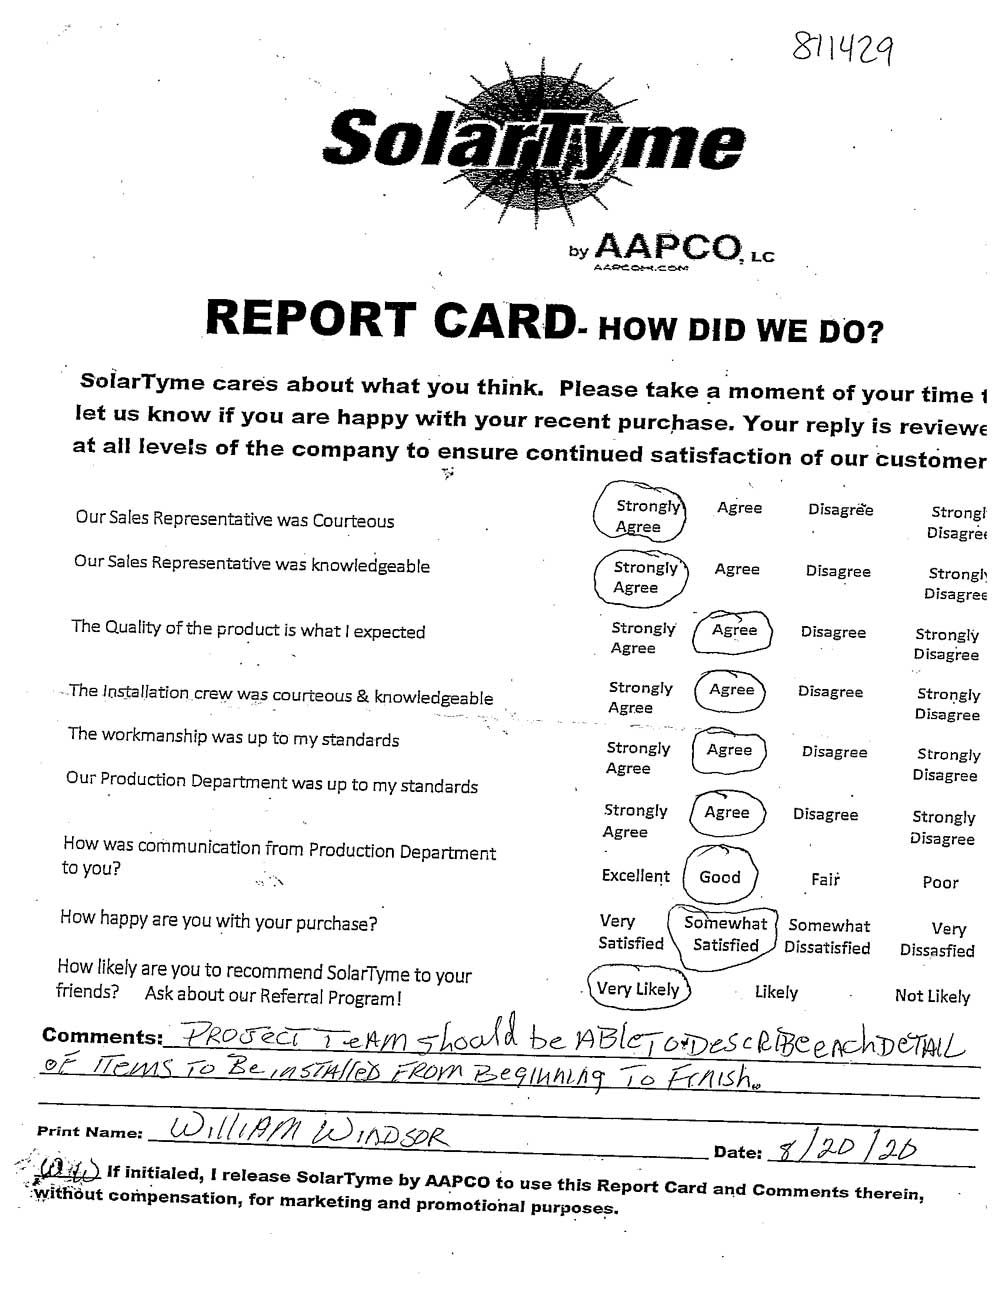 William Windsor SolarTyme Report Card